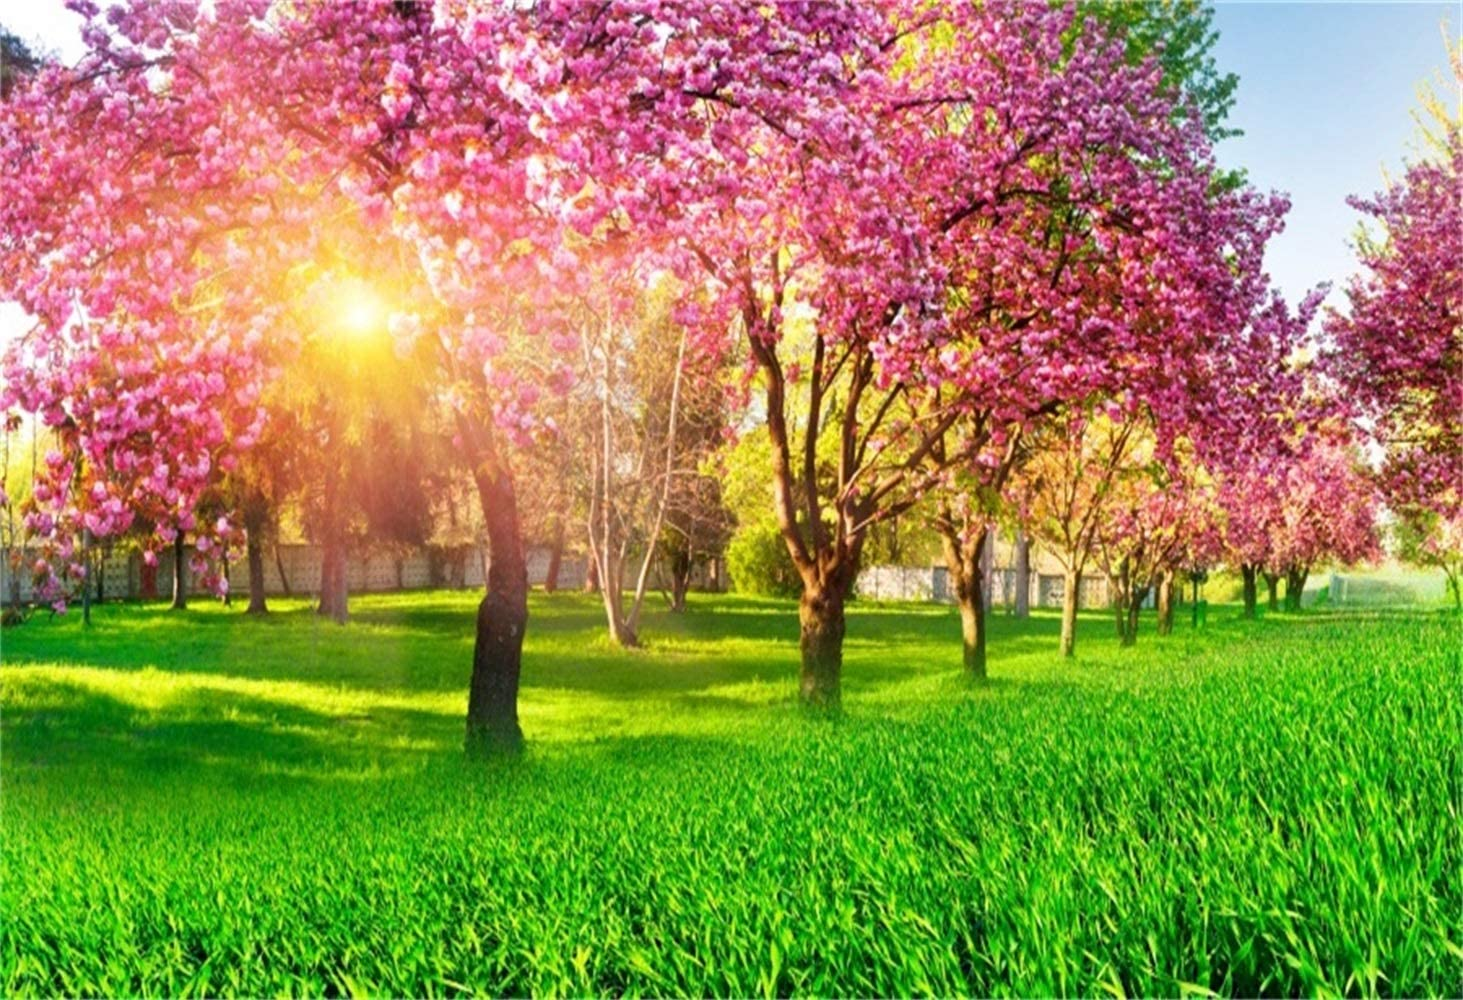 10x6.5ft Afternoon Blooming Trees Backdrop Polyester Setting Sun Vibrant Garden Purple Blossom Trees Green Grassland Photography Background Wedding Photo Booth Bride Portrait Shoot Spring Scenic